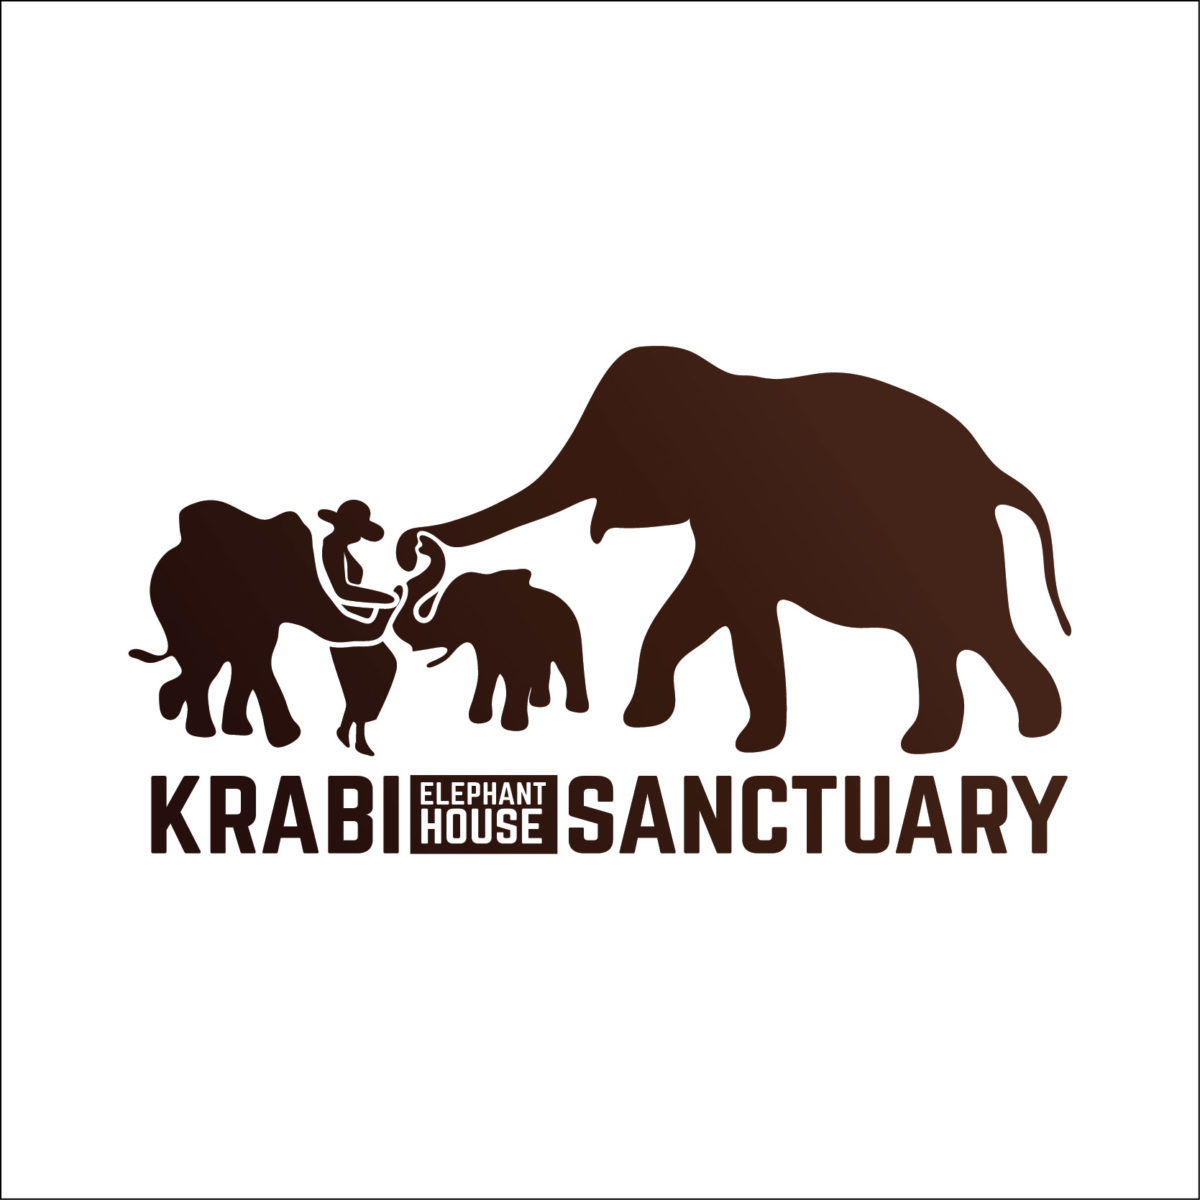 krabi elephant house sanctuary FB logo